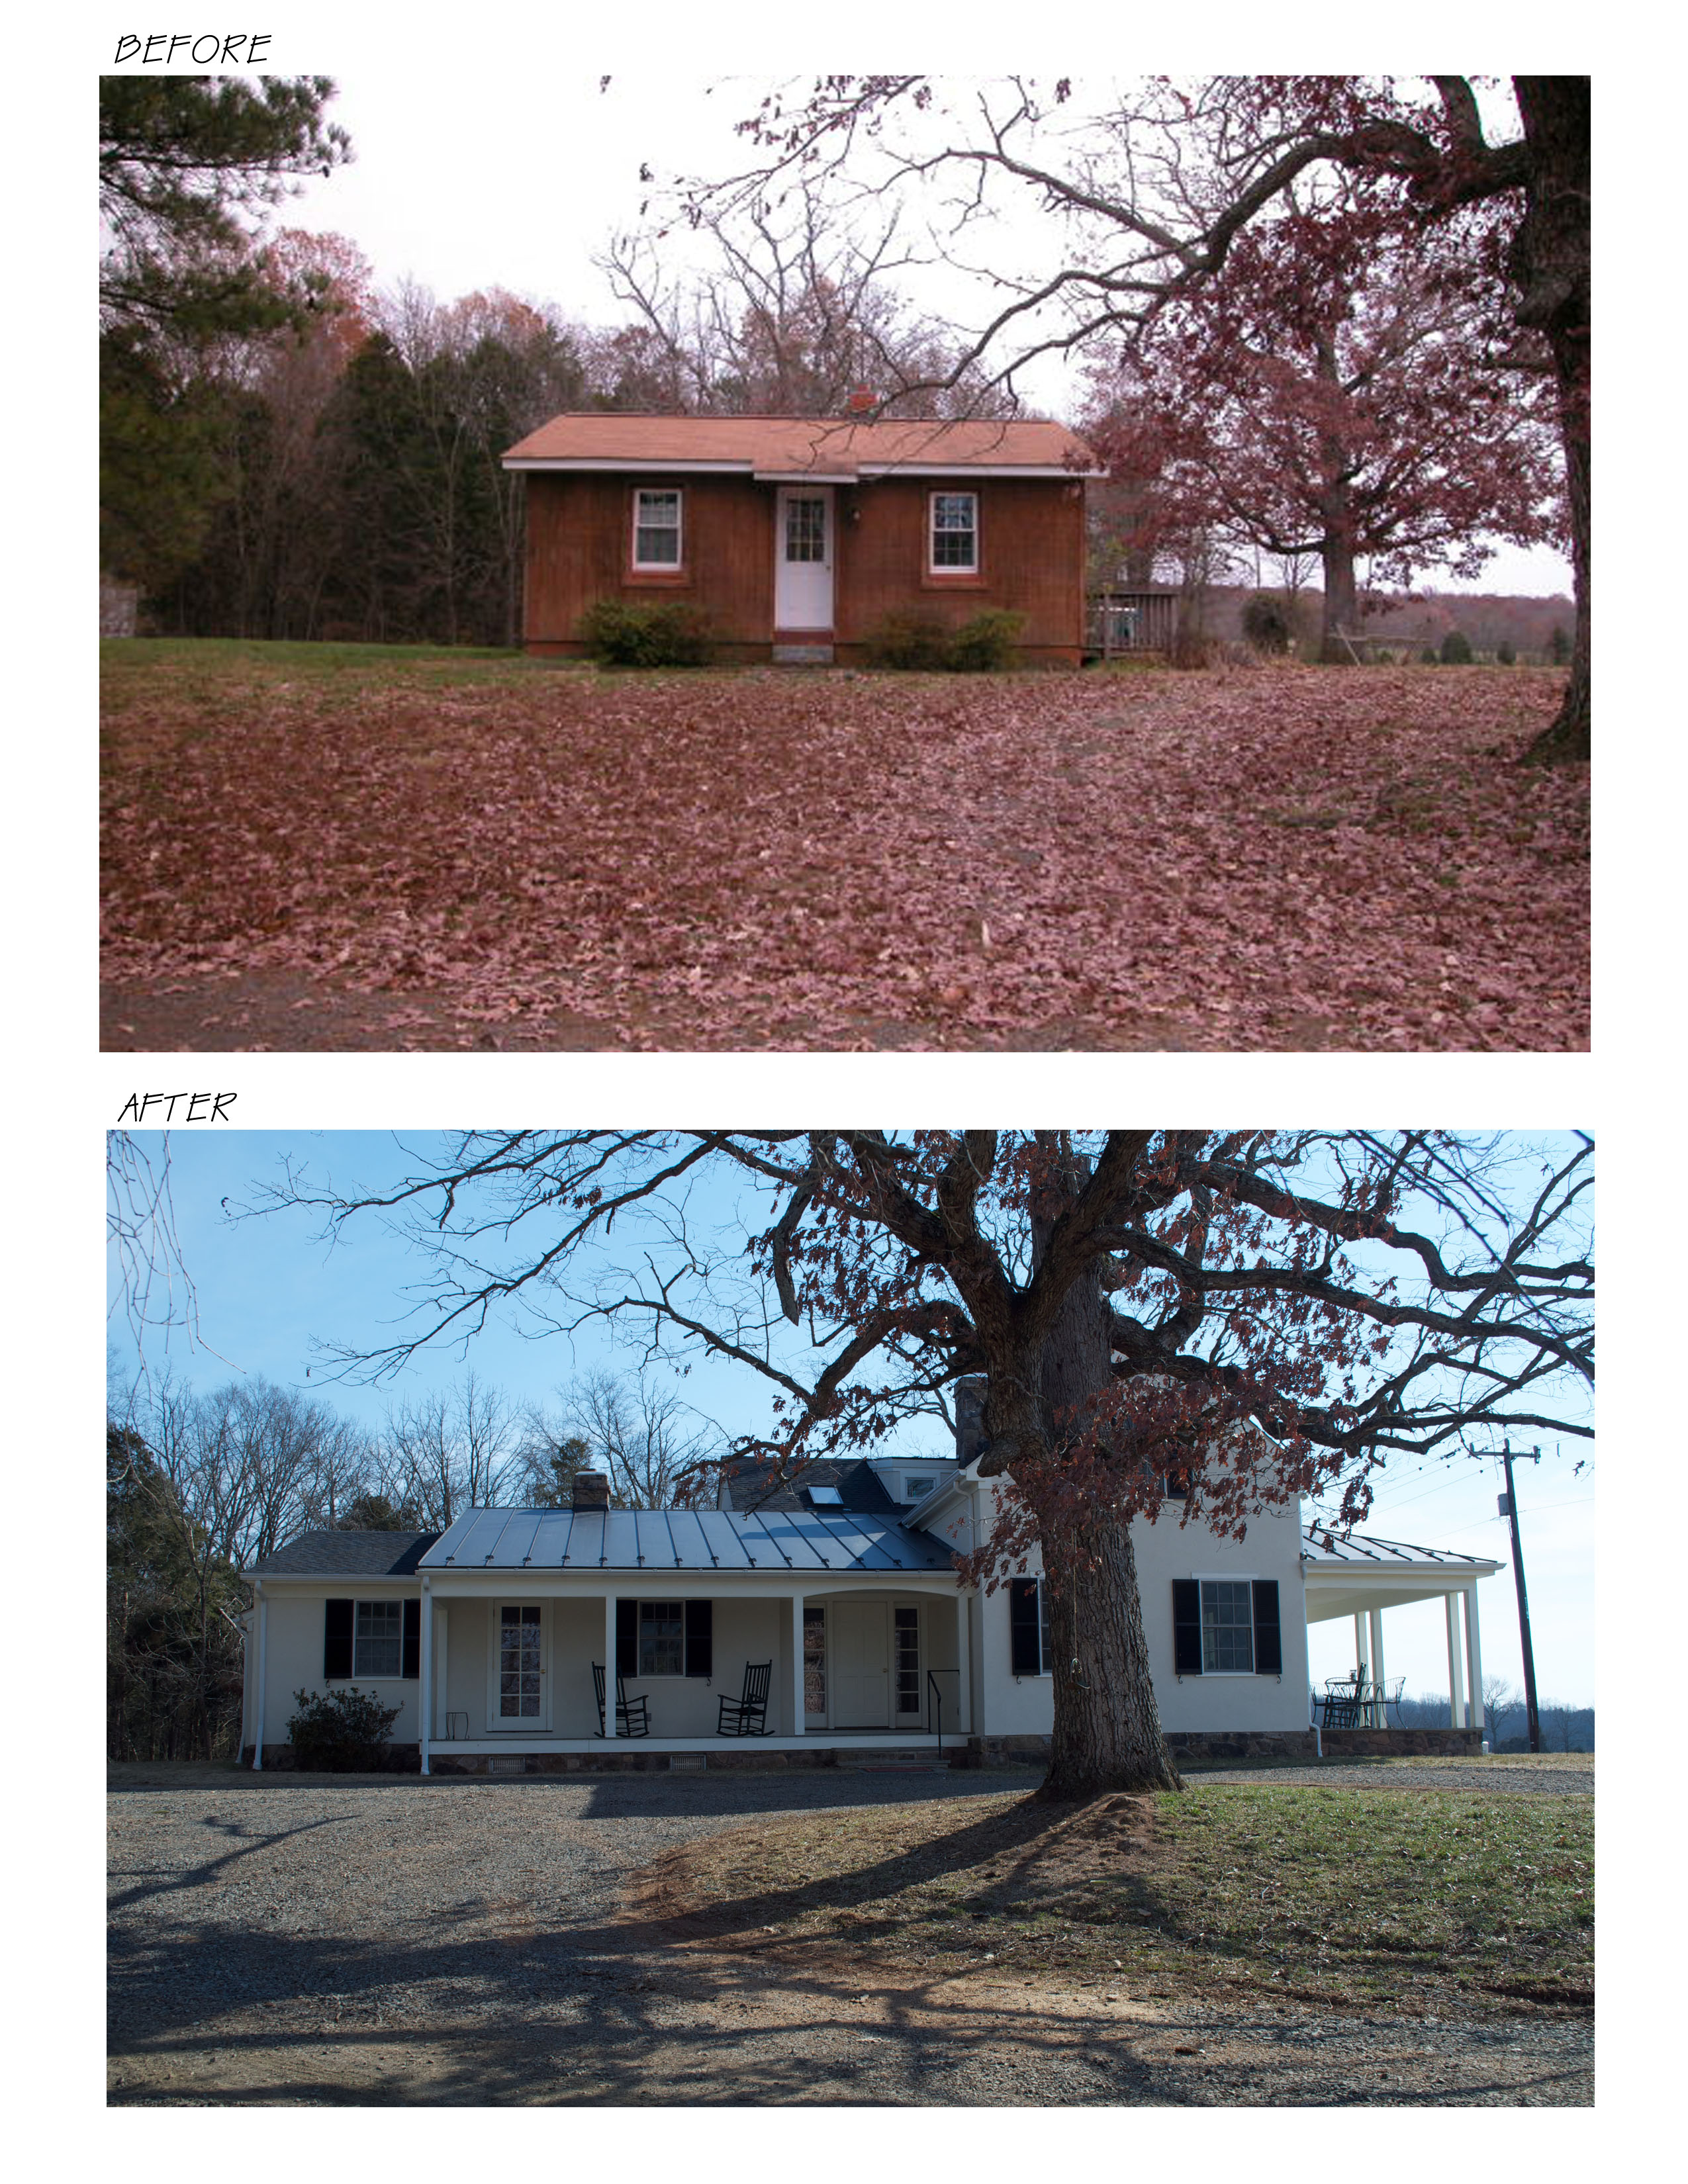 Check out the Before and After of the front facade!